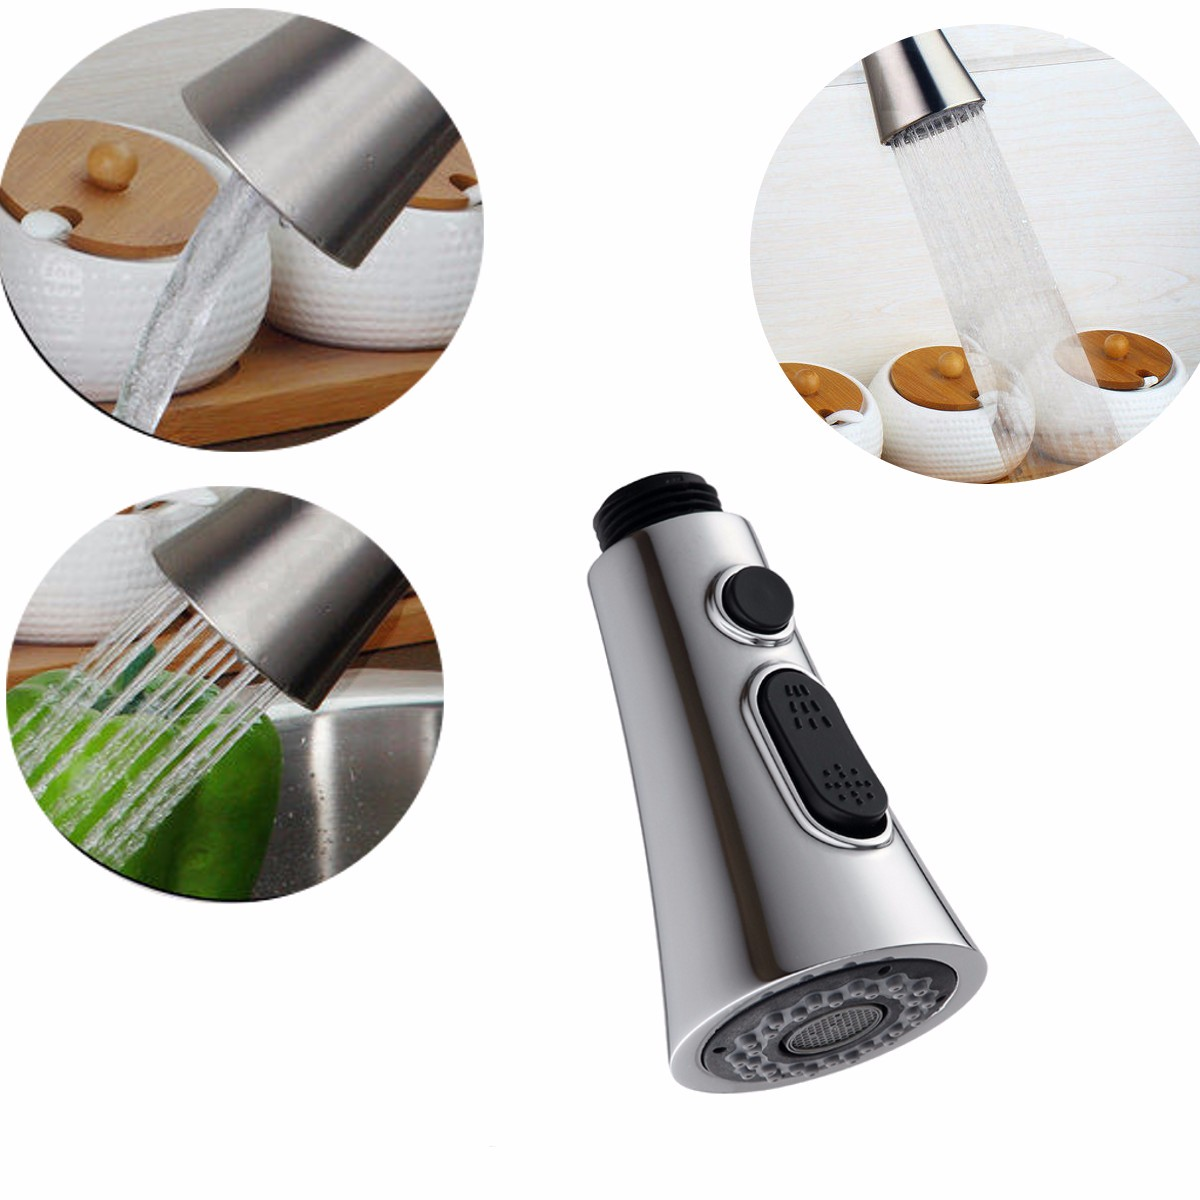 Laundry Plating Mixer Tap Faucet Pull Out Spray Nozzle For Kitchen Basin Sink